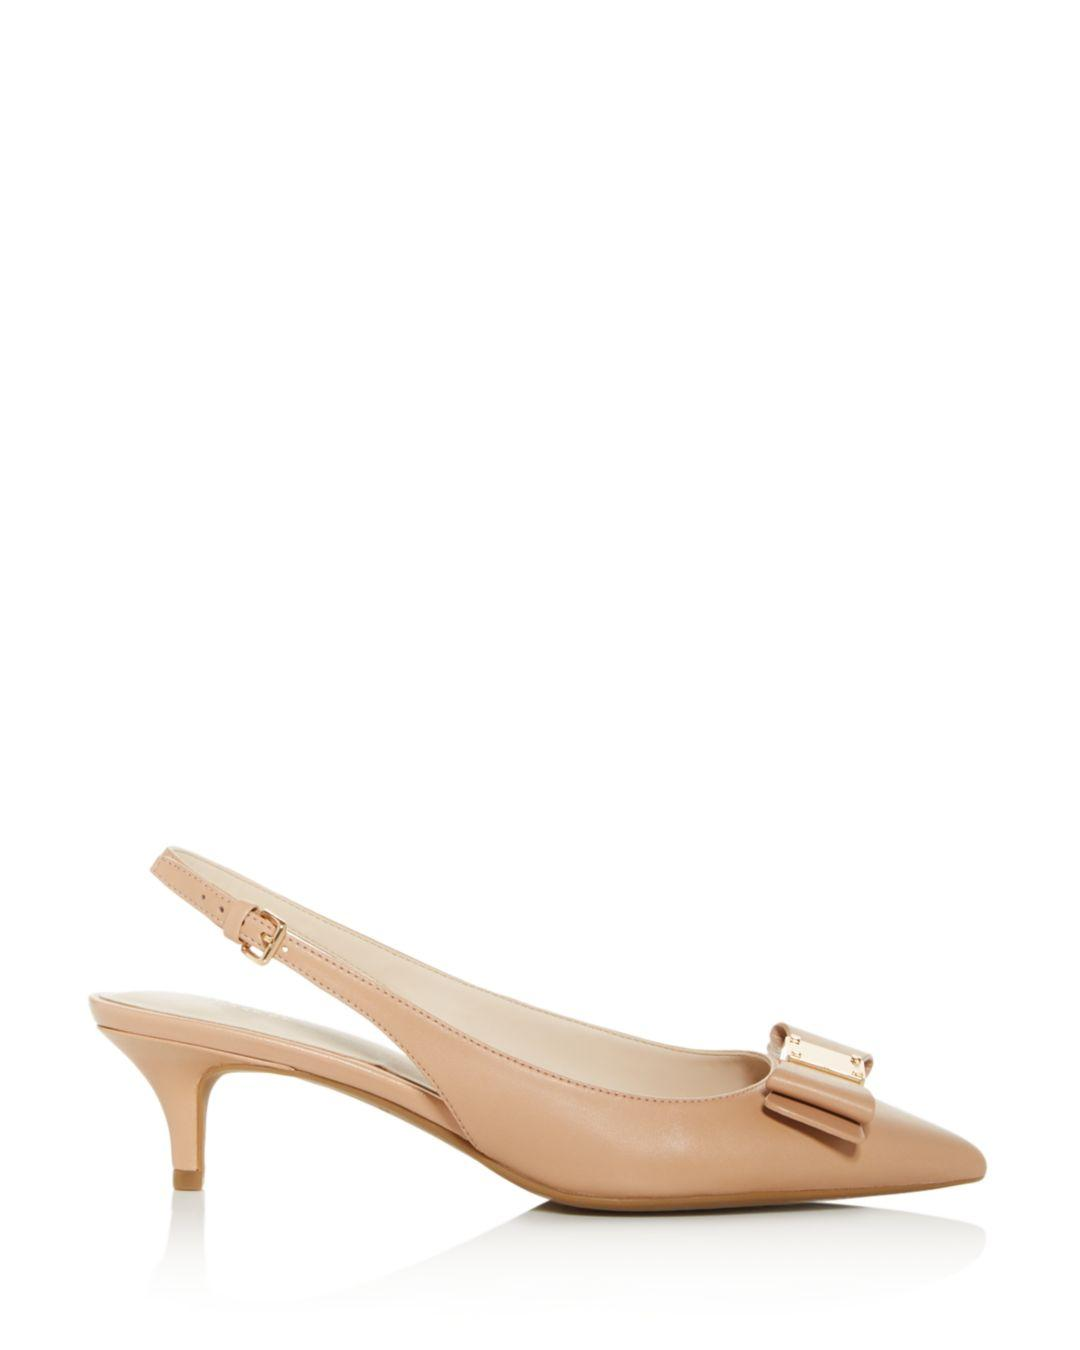 4170ae43447 Lyst - Cole Haan Women s Tali Bow Slingback Pumps in Natural - Save 30%